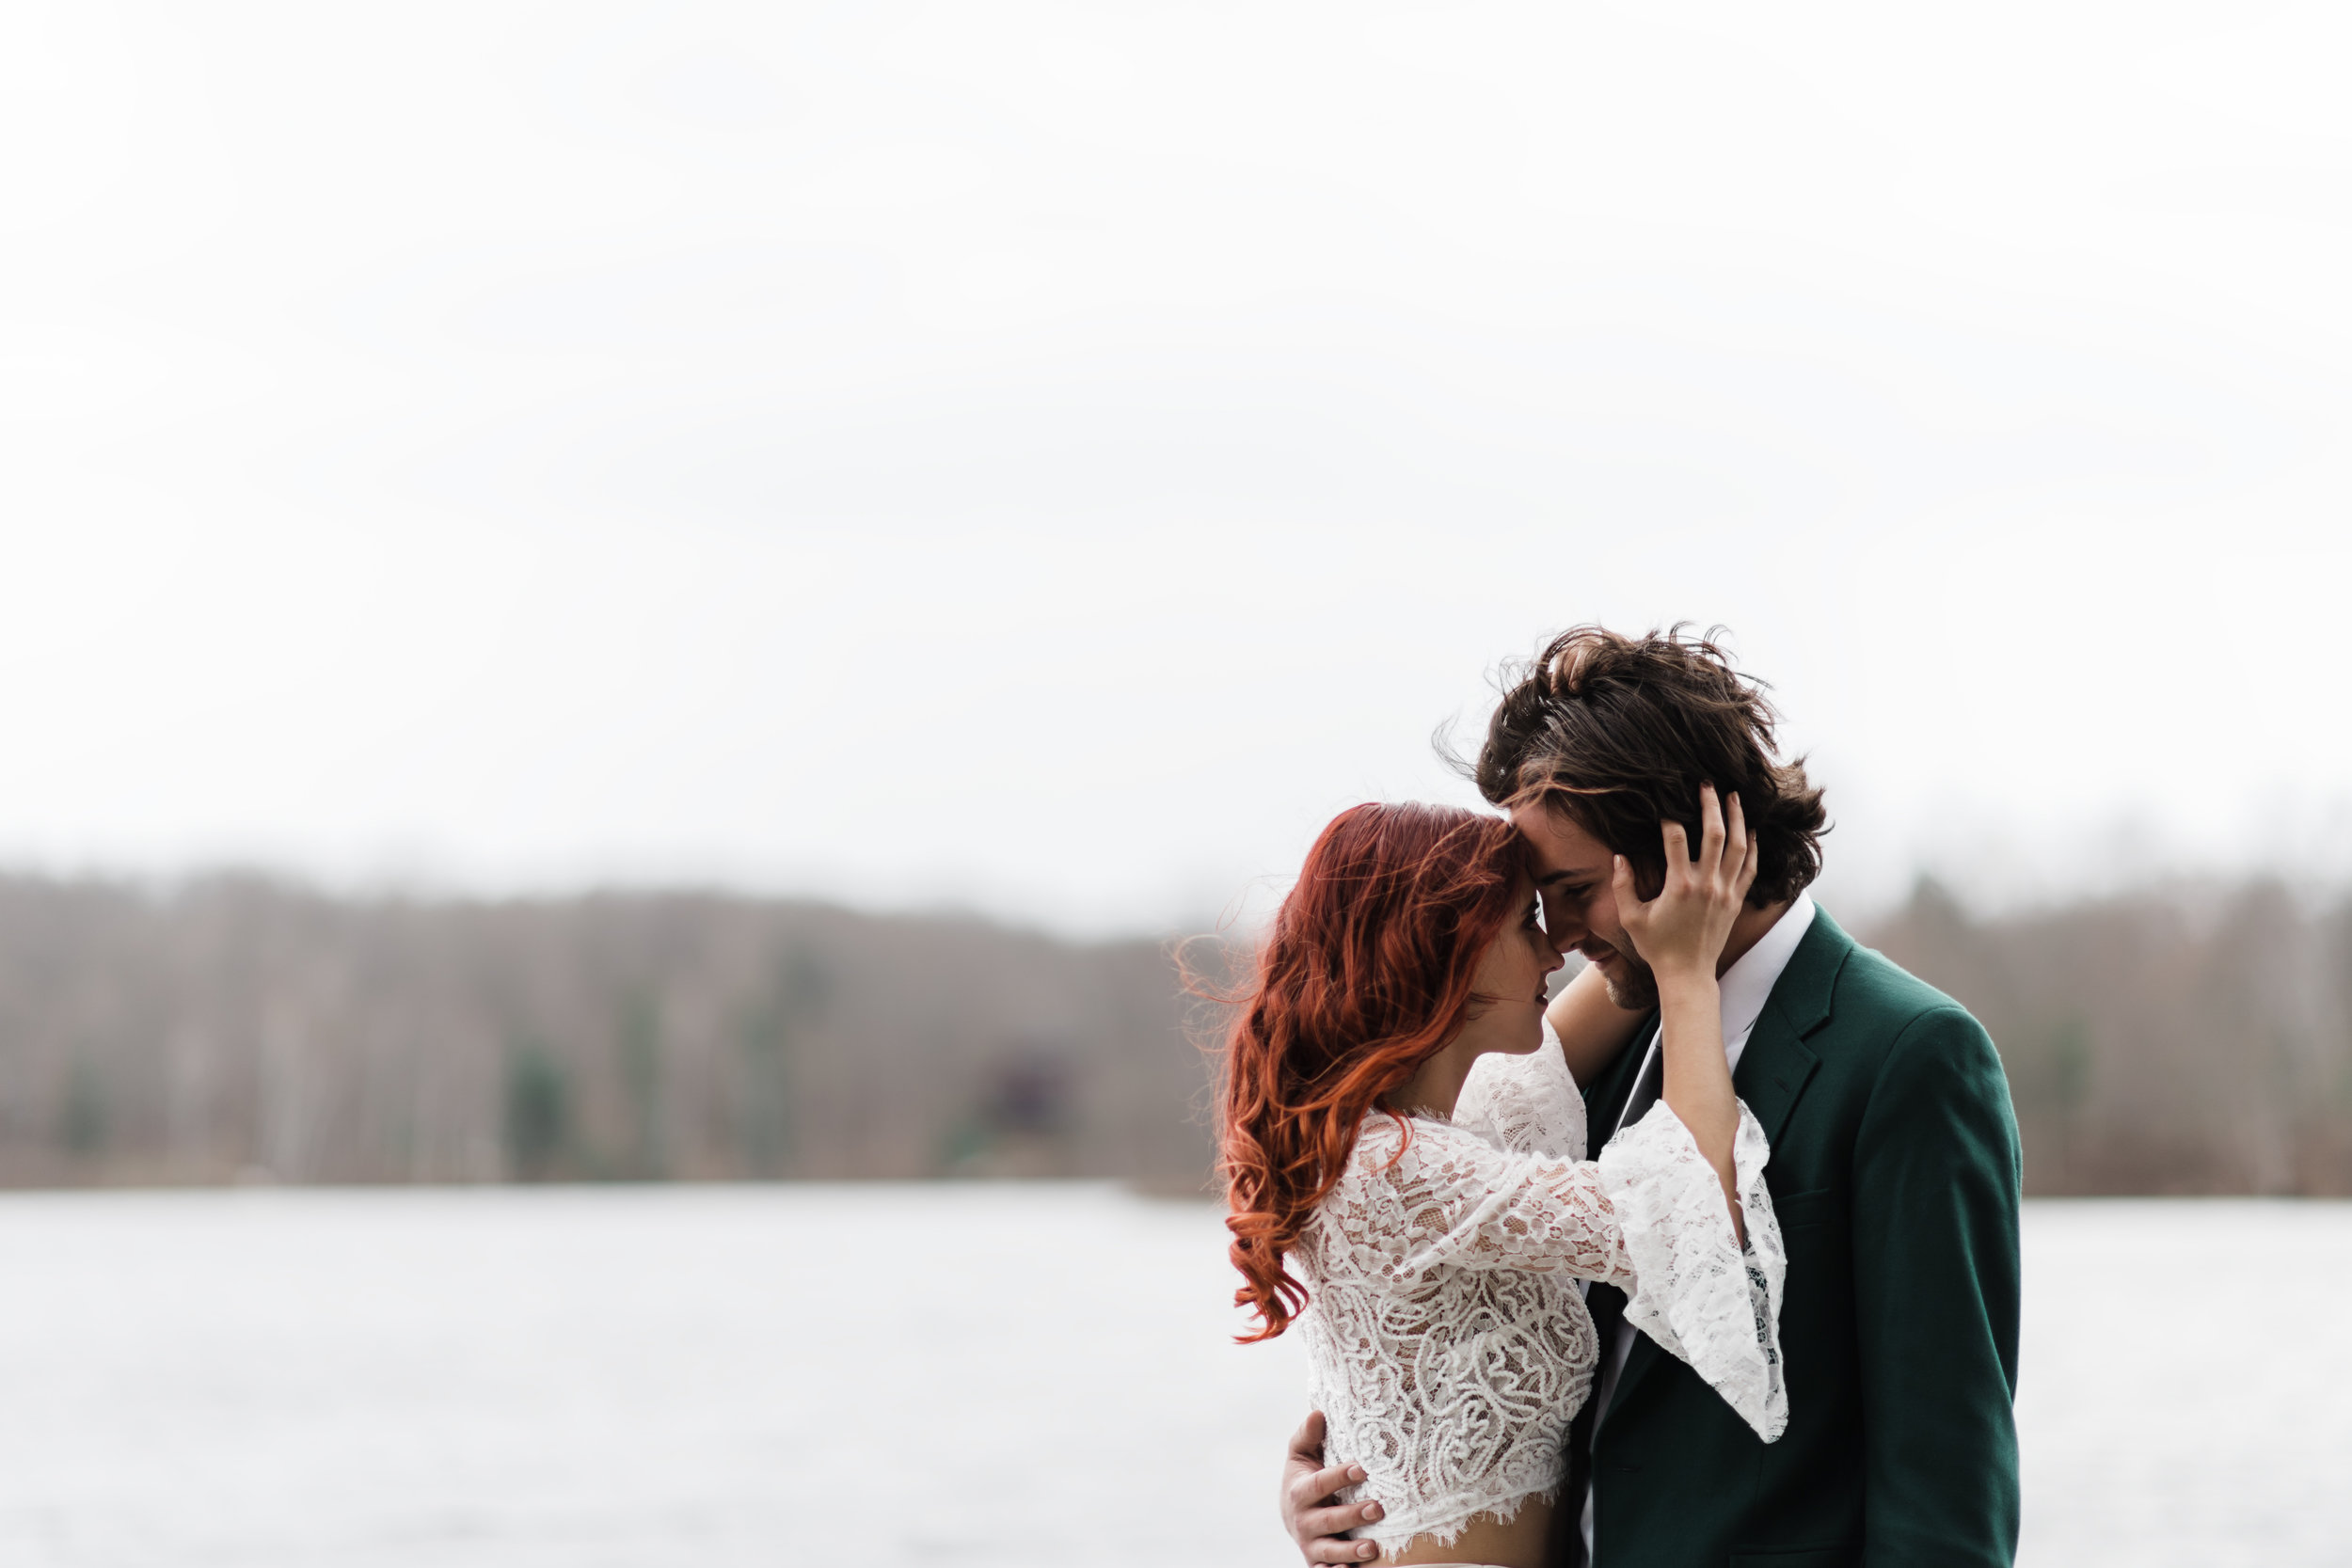 Bride with curly red hair in lace and beaded crop top running hands through groom's hair.